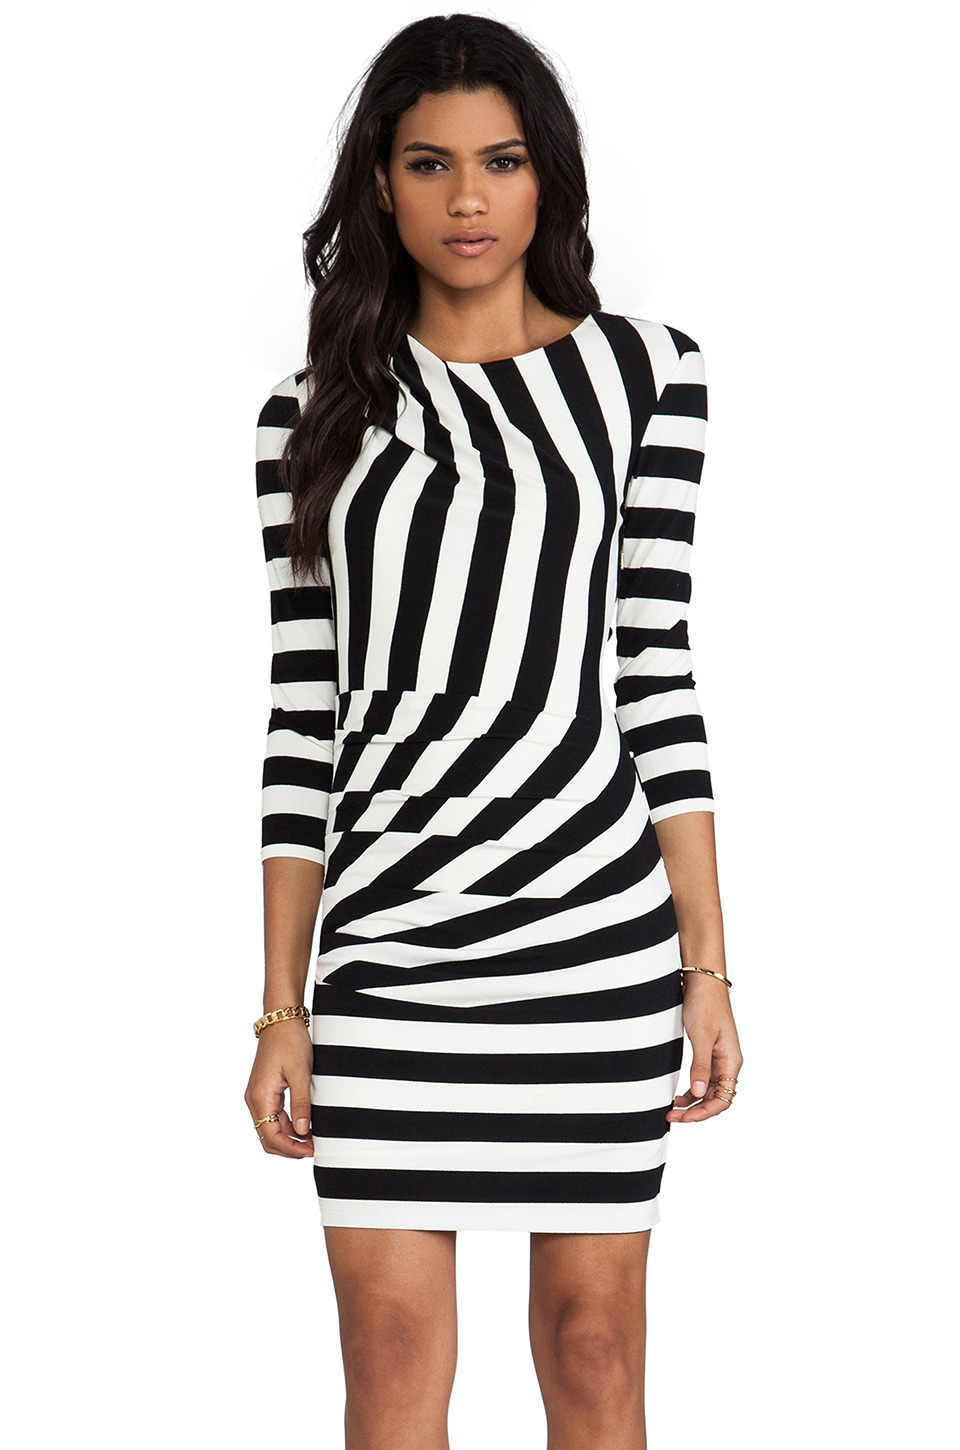 Juicy Couture Promenade Stripe 3/4 Sleeve Dress in Black & Angel